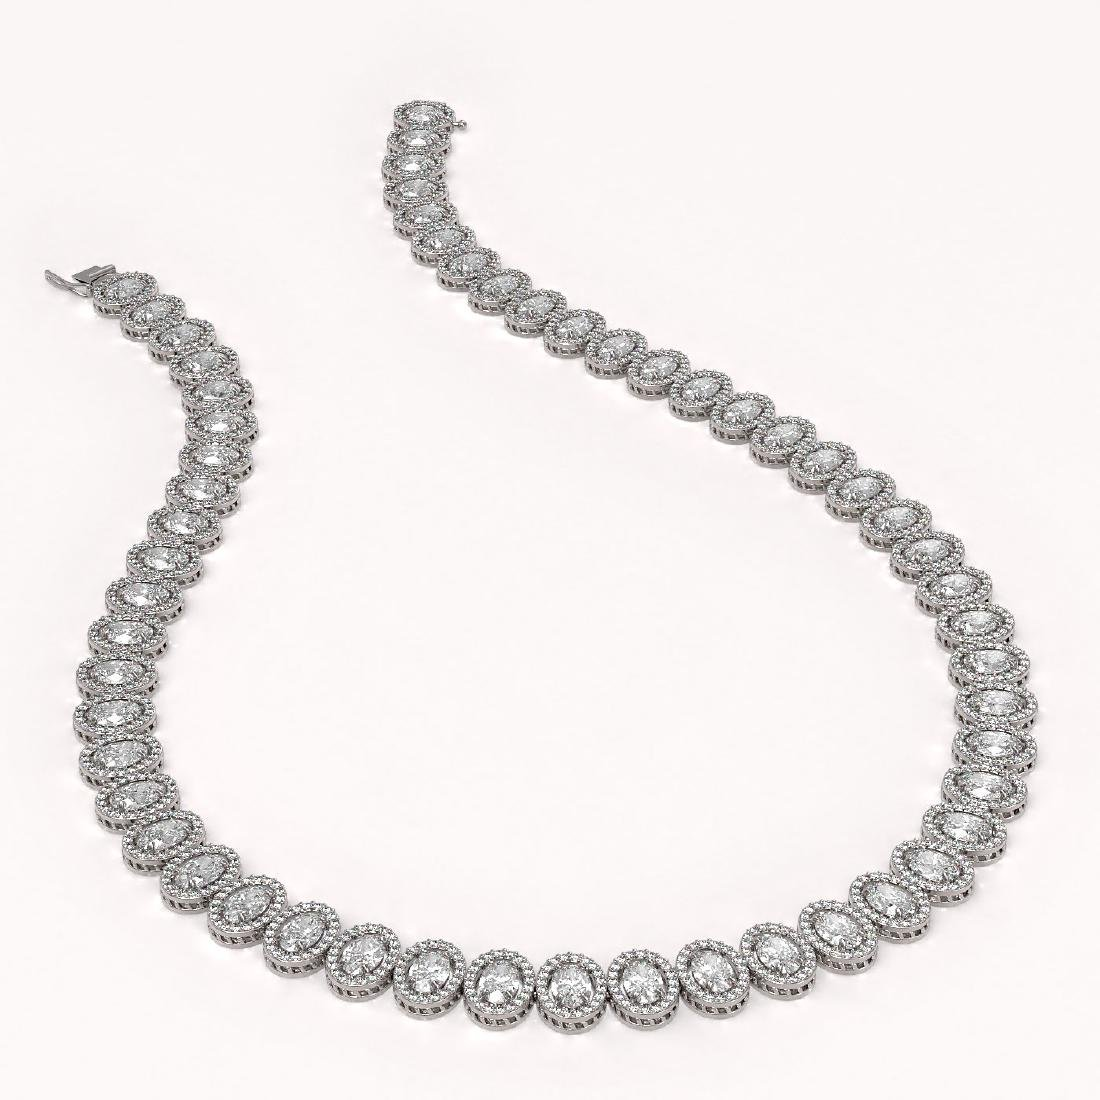 34.72 CTW Oval Diamond Designer Necklace 18K White Gold - 2